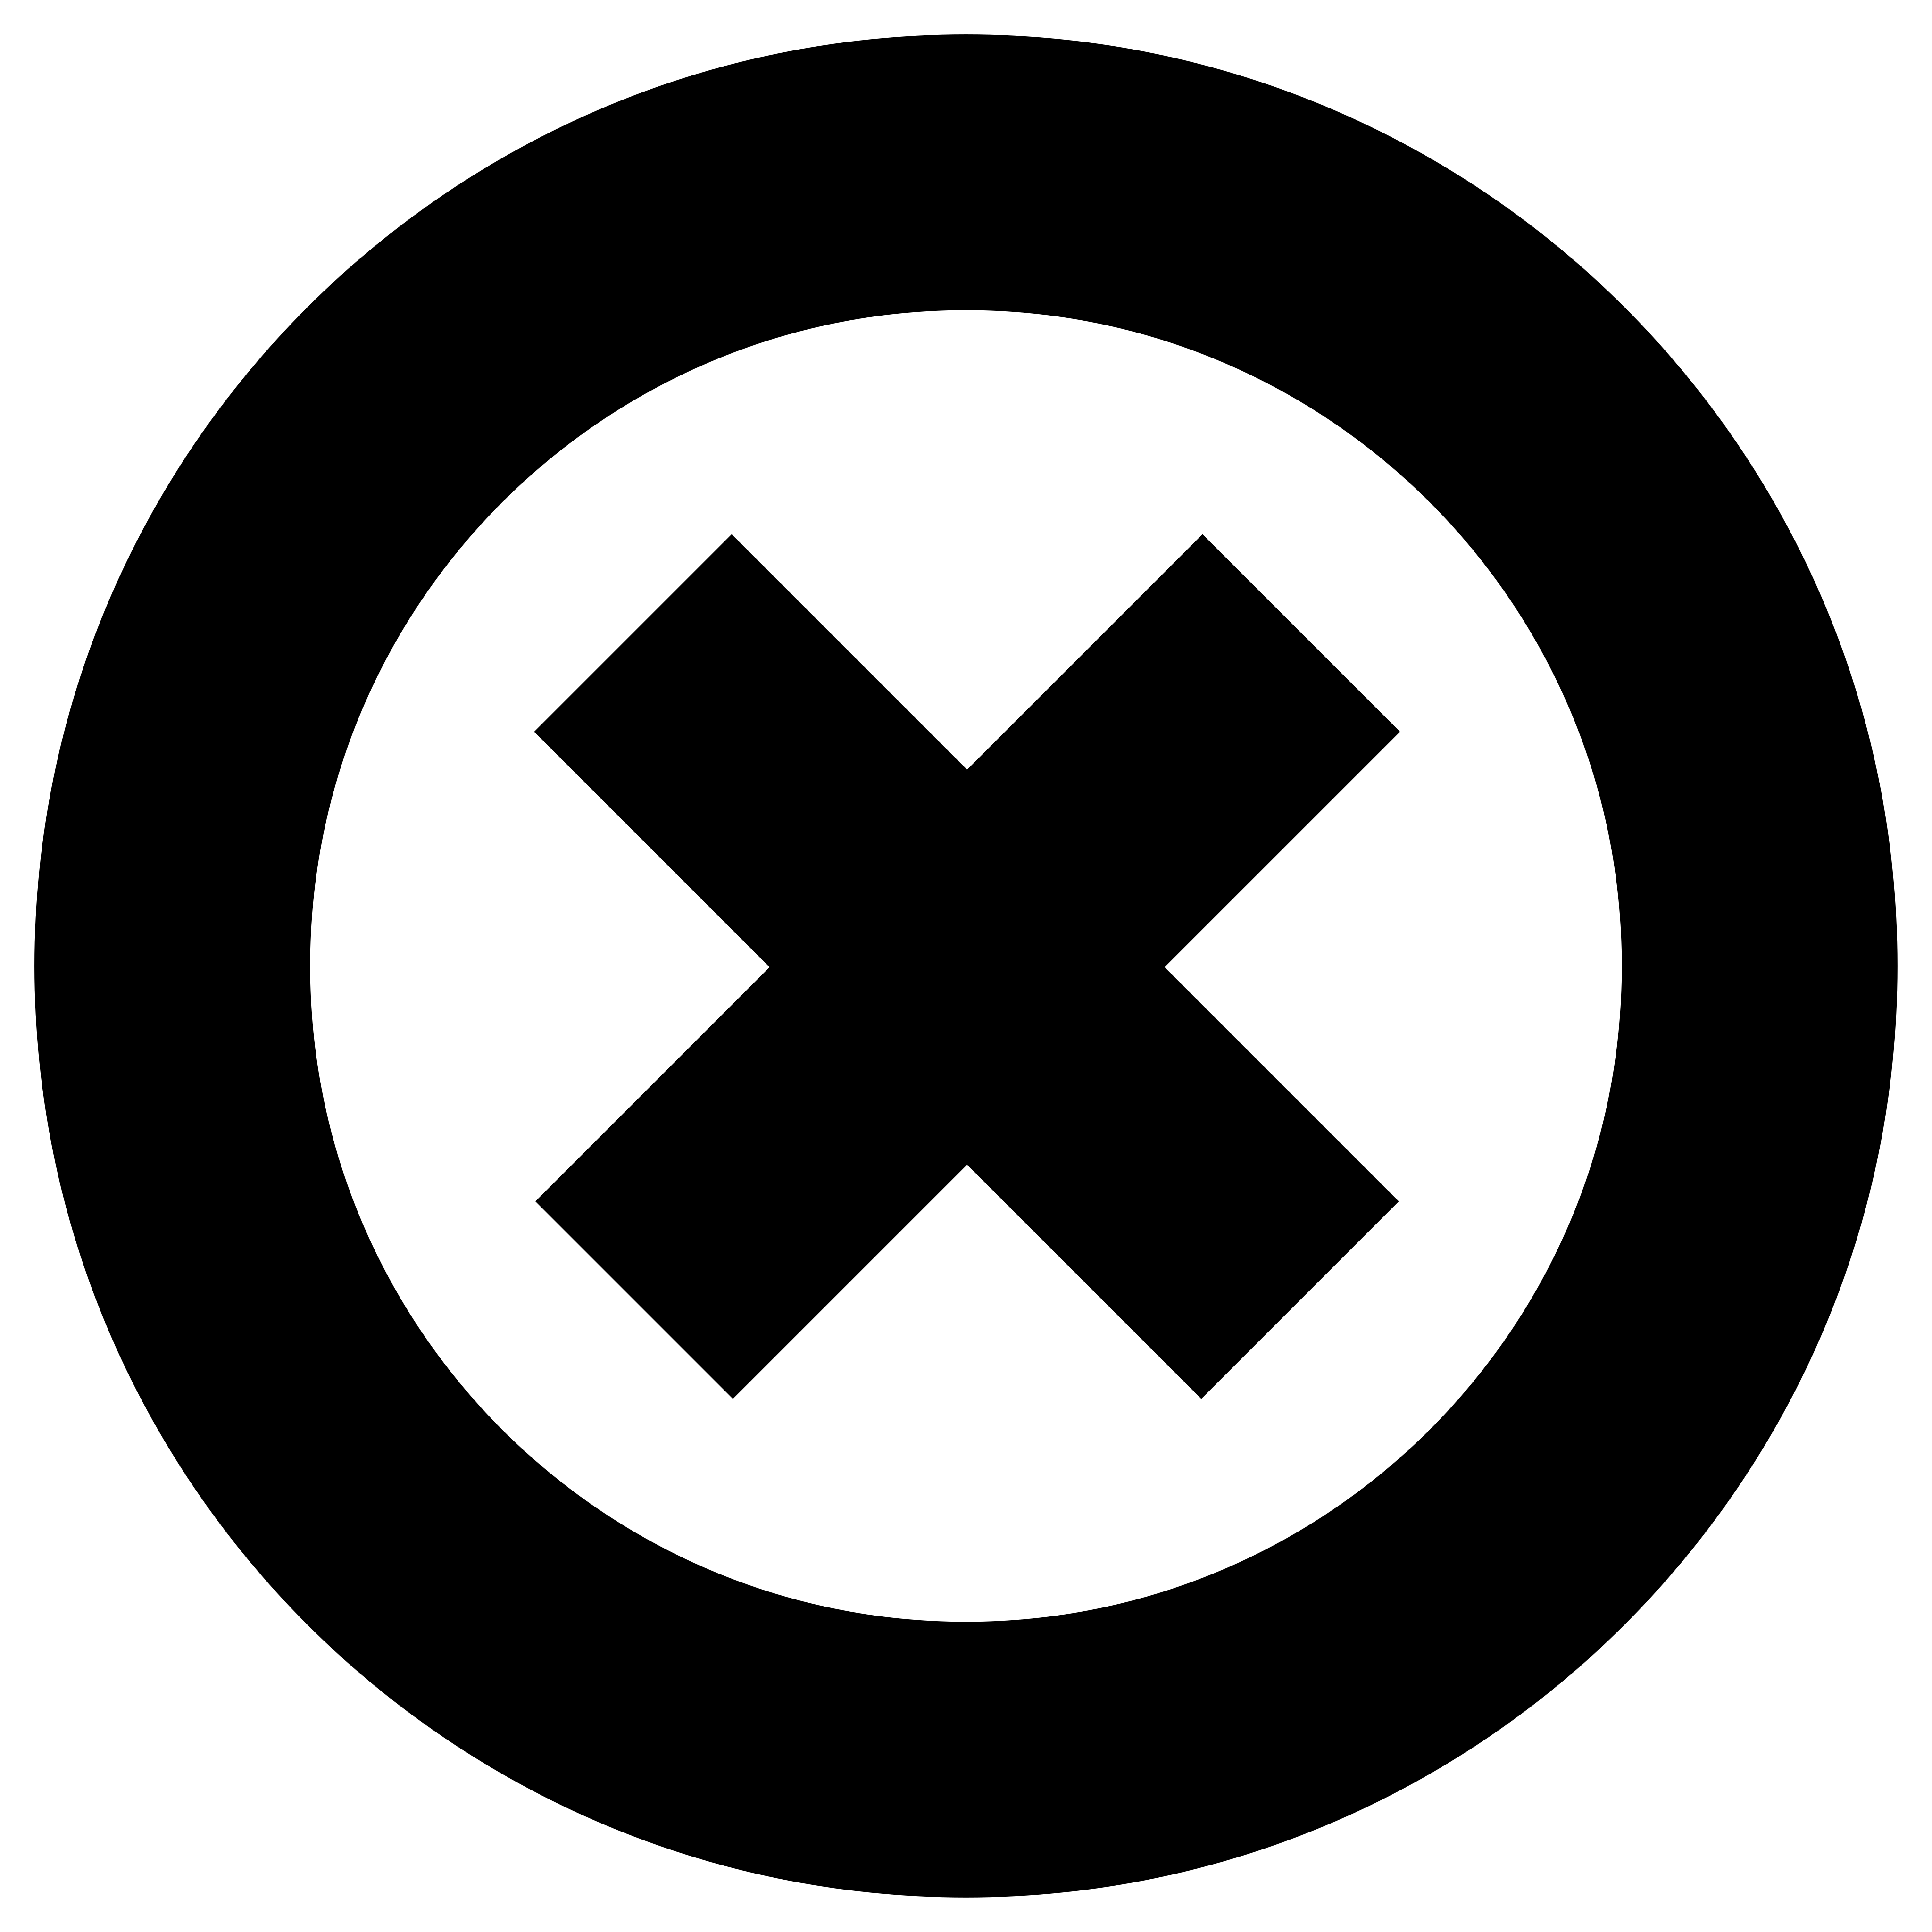 Circle x png. File svg wikimedia commons